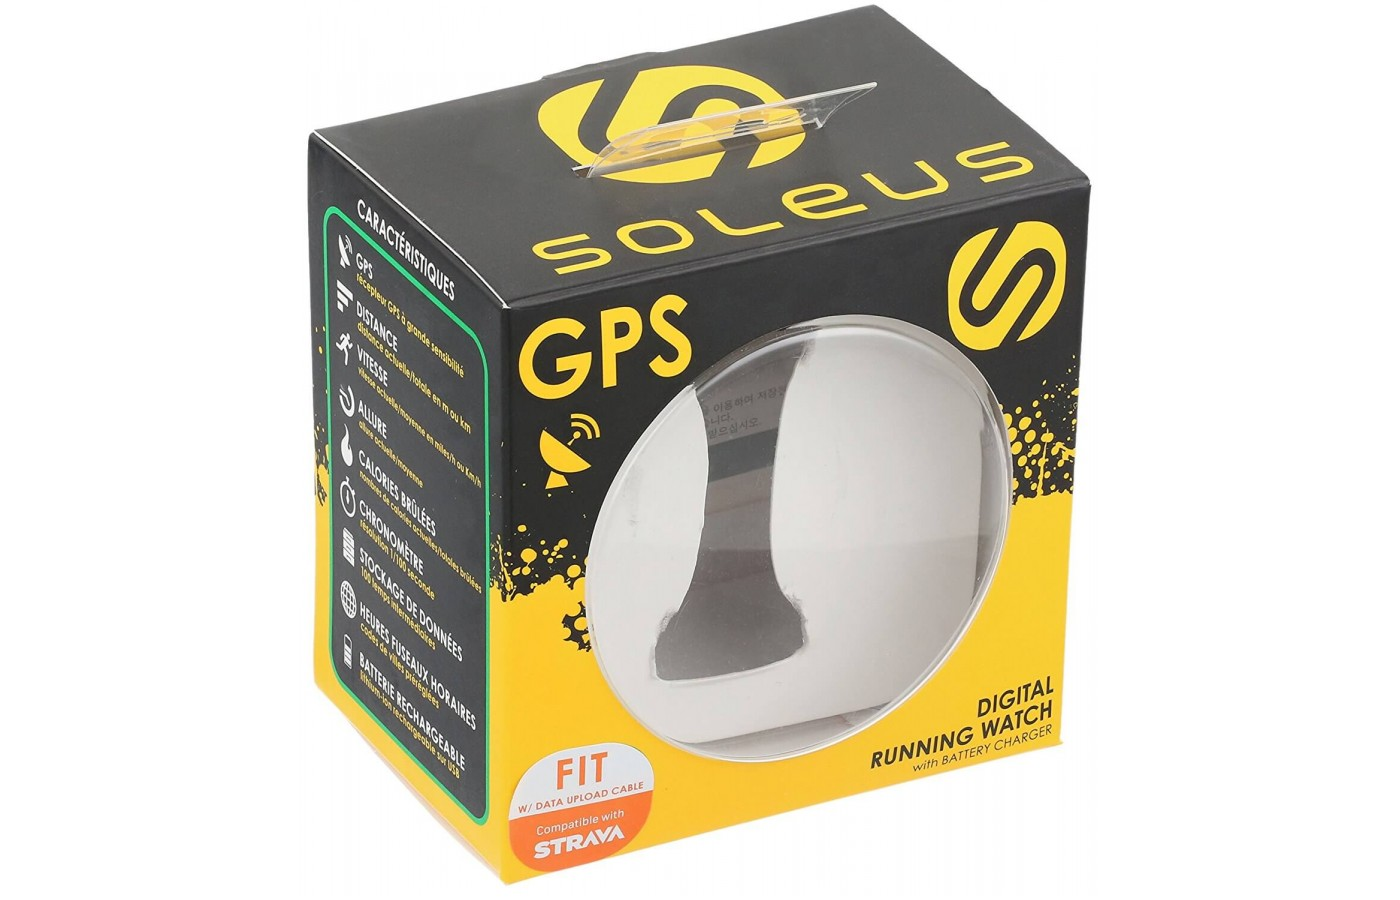 The Soleus GPS Fit 1.0 has a 30 run workout history